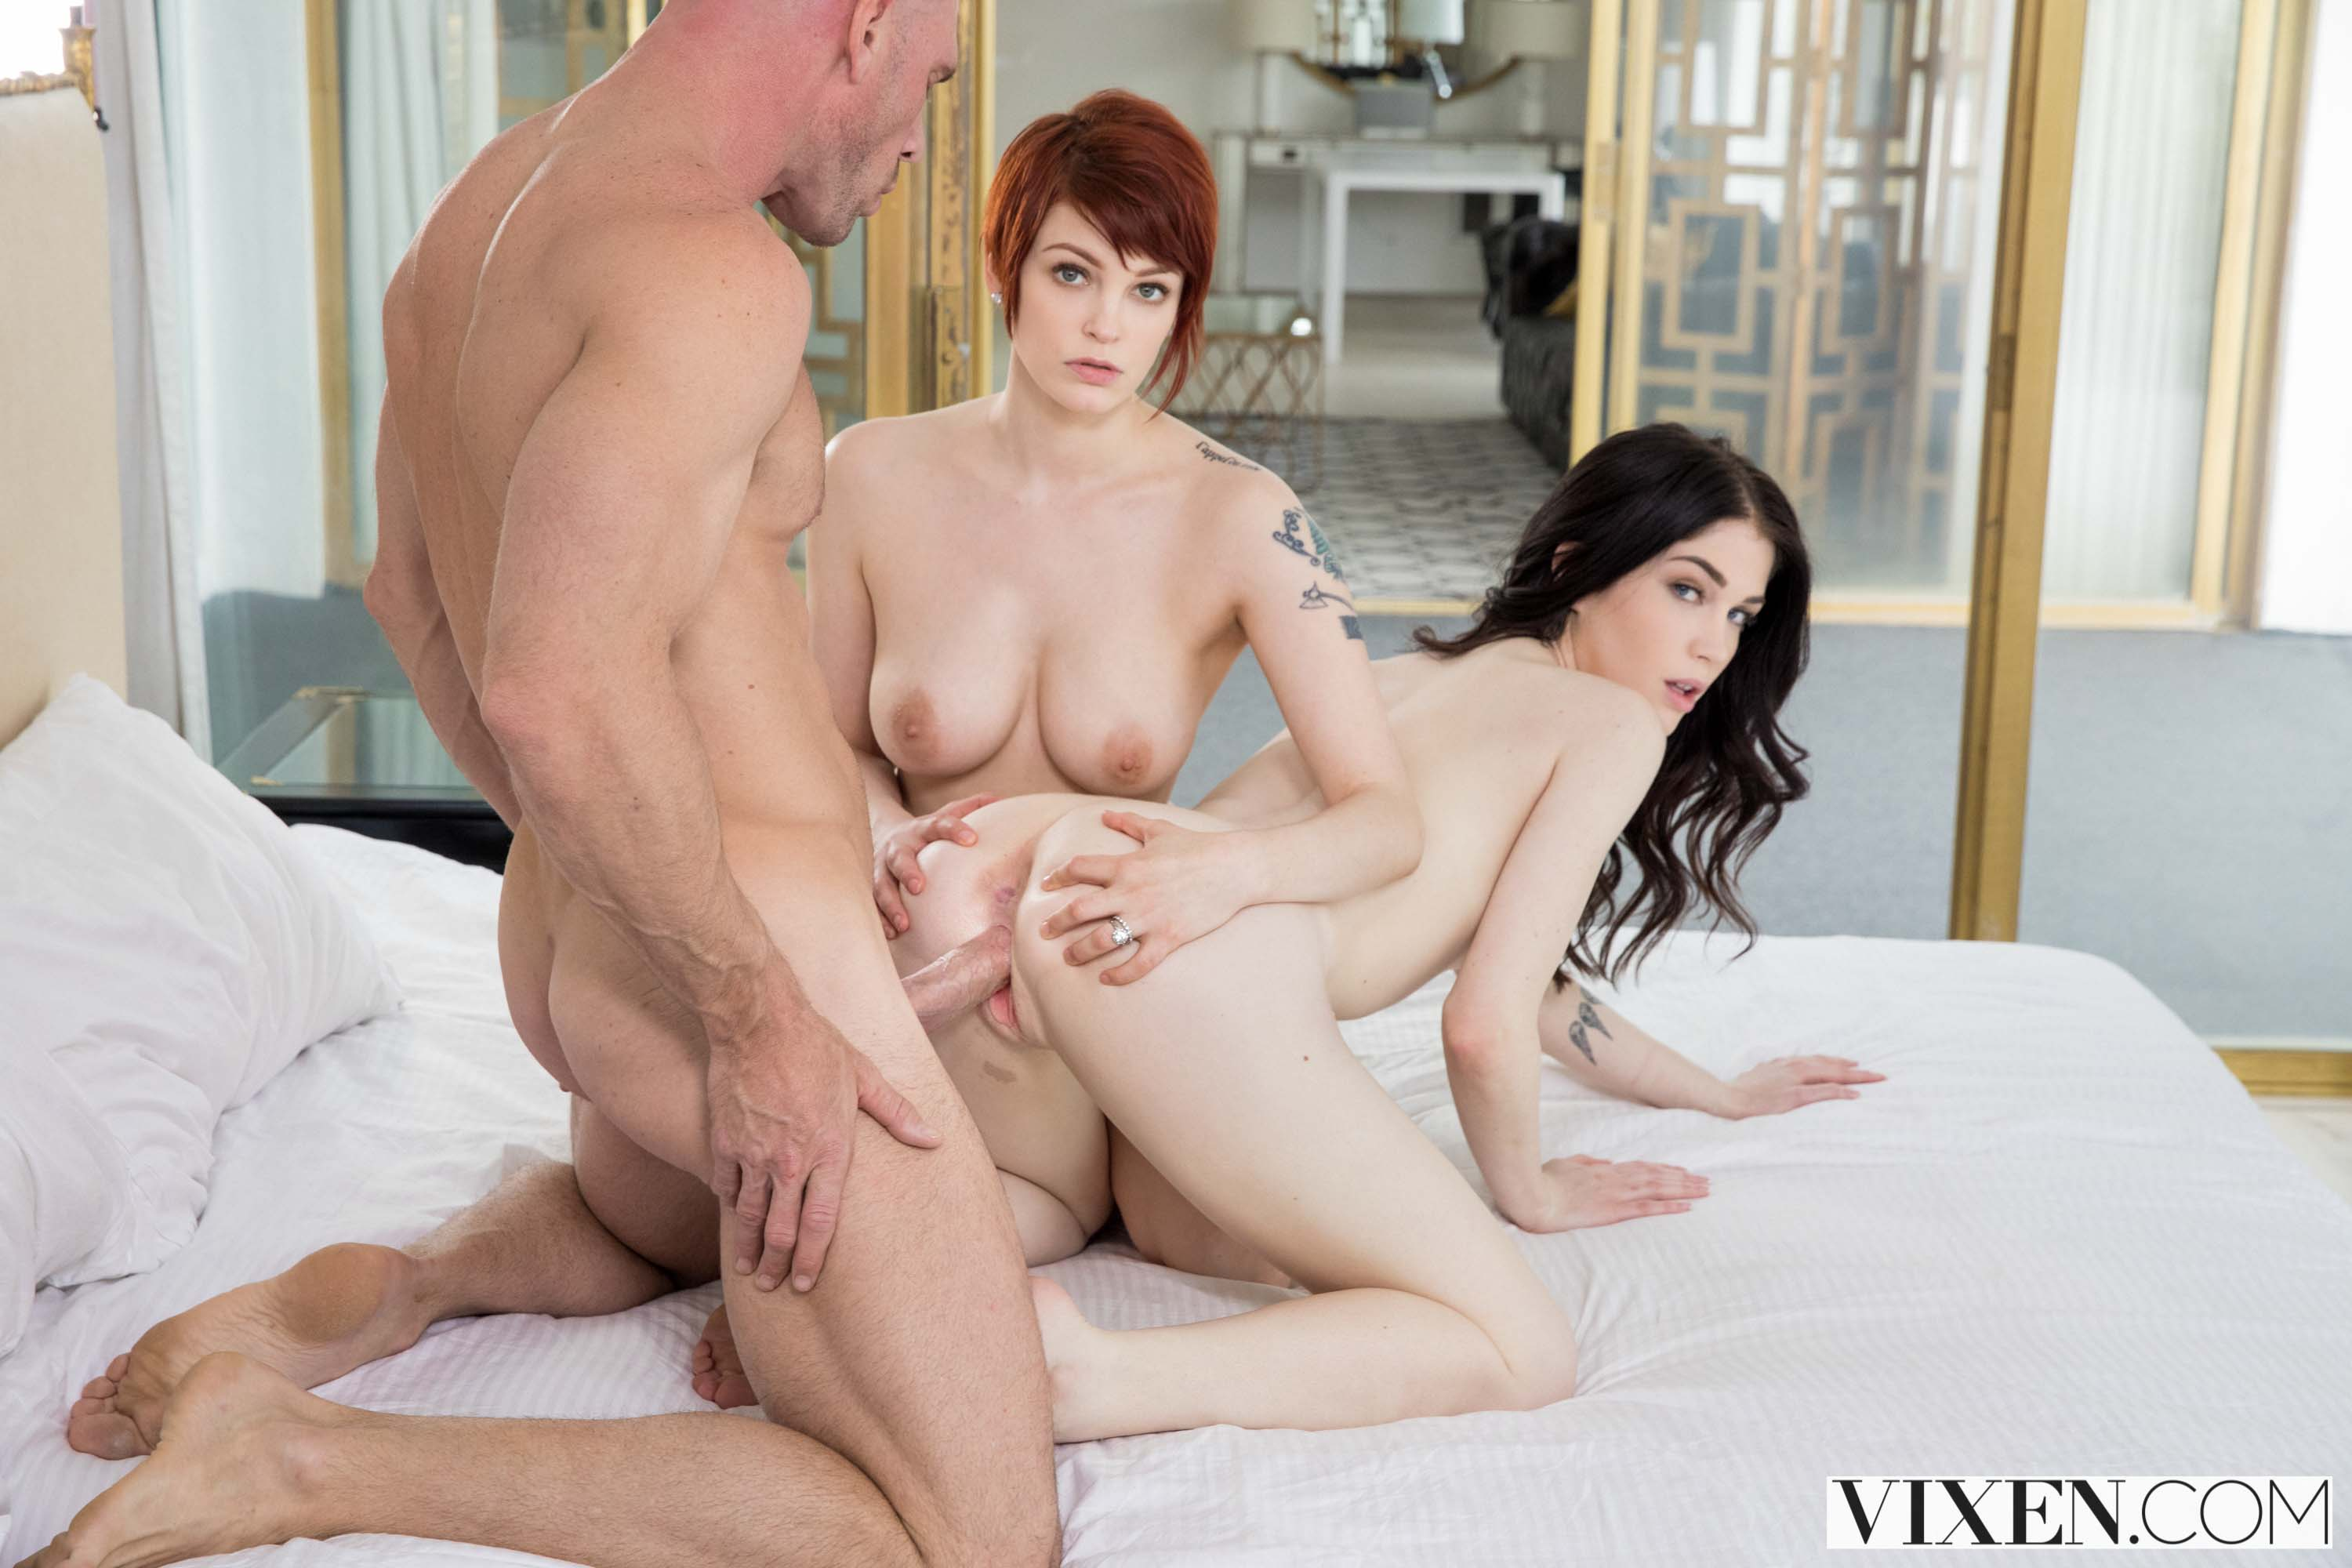 Bree Daniels - My First Date With A Couple | Picture (15)